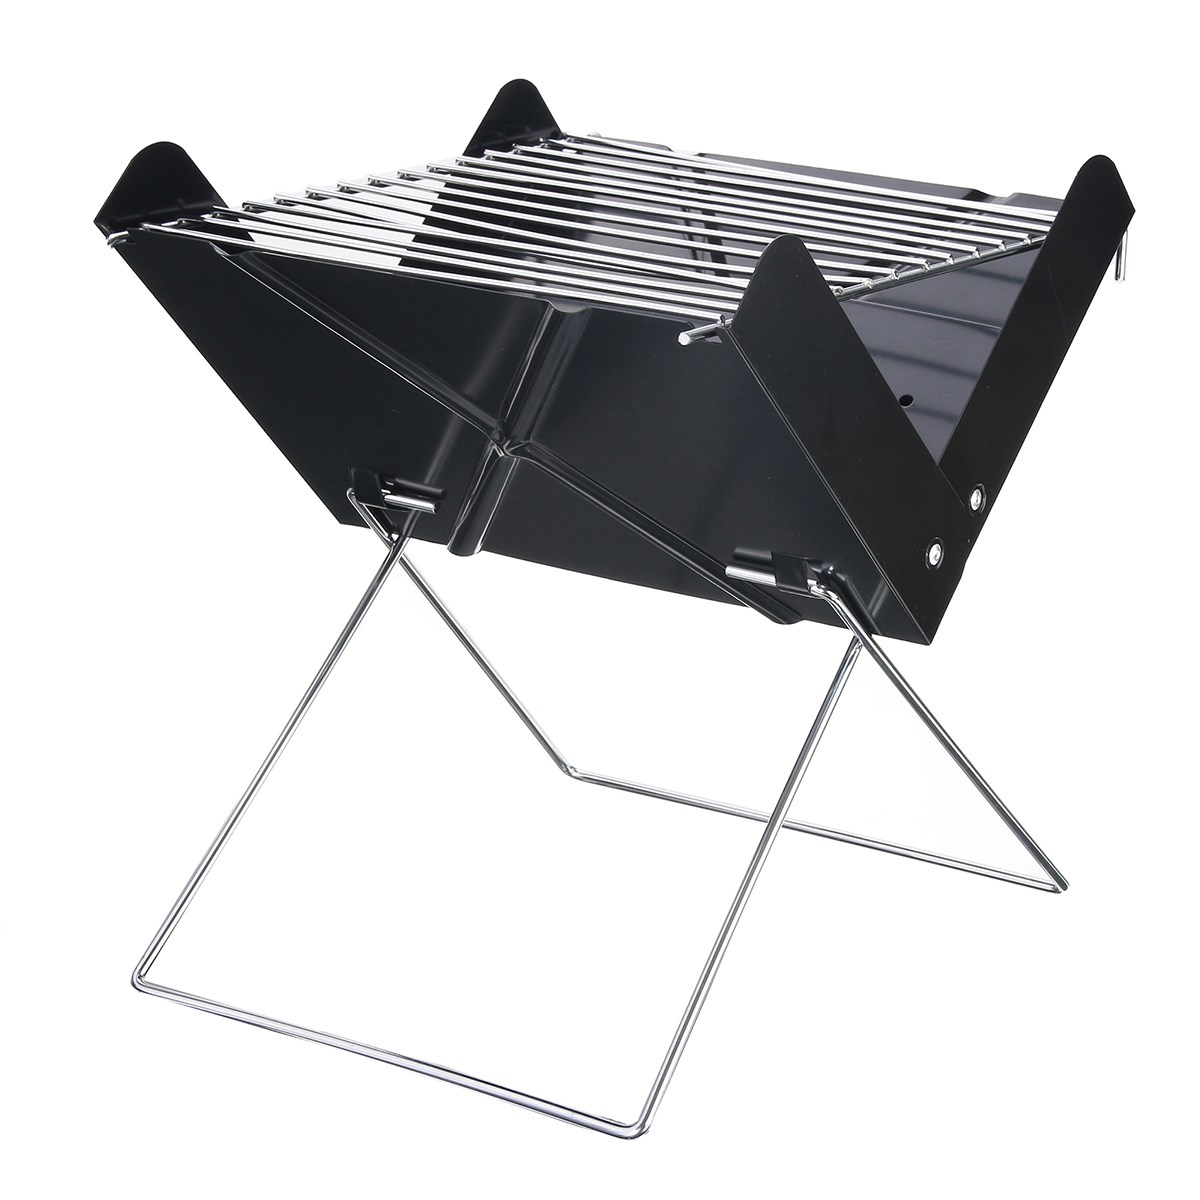 Barbecue Grills Stainless Steel Outdoor Foldable Camping BBQ Portable  Cooking Travel Ultralight Oven Rack Tools 29